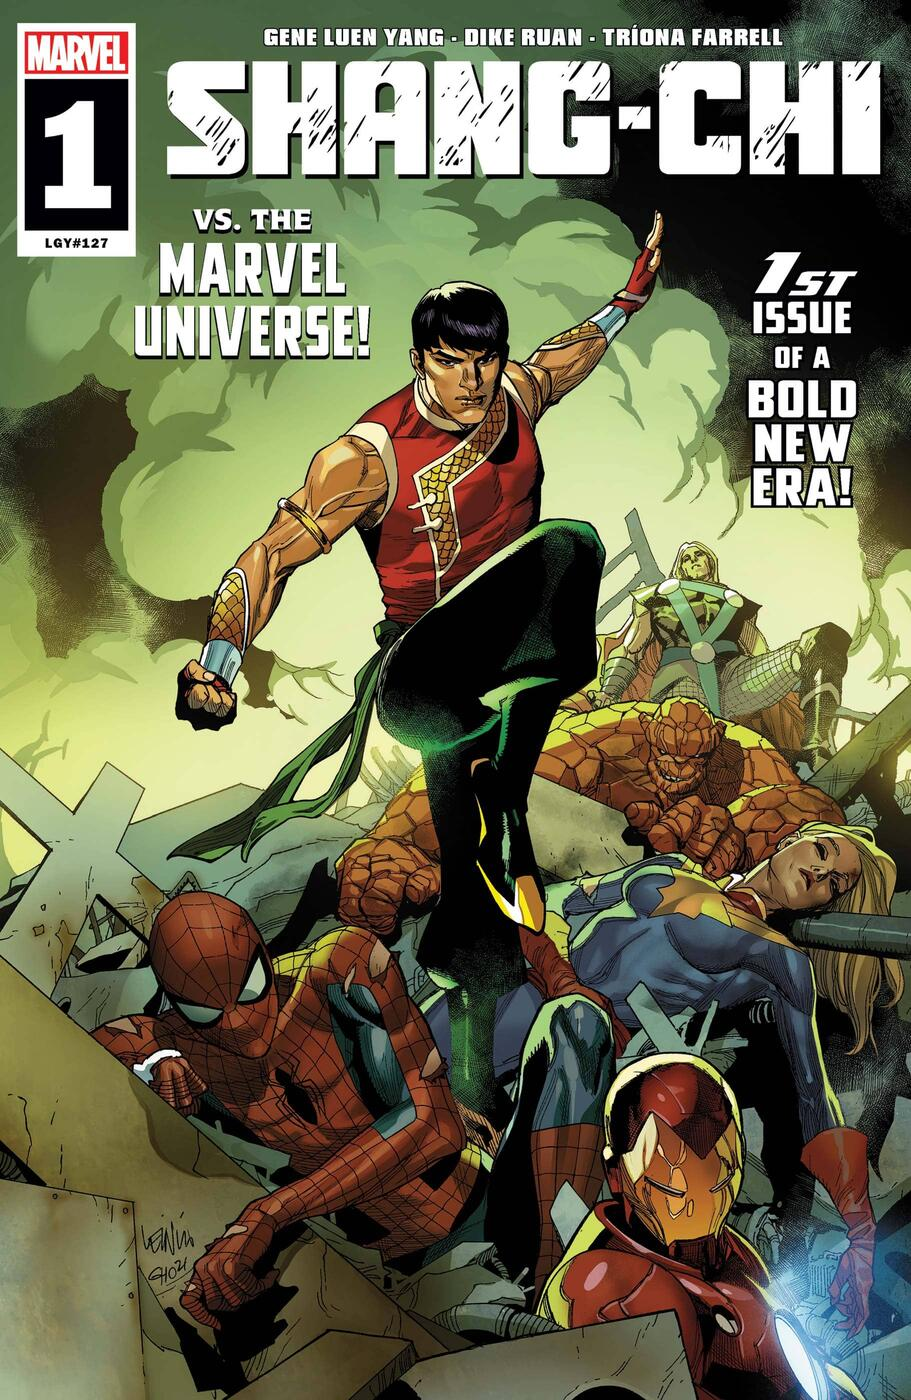 Cover to Shang-Chi (2021) #1.